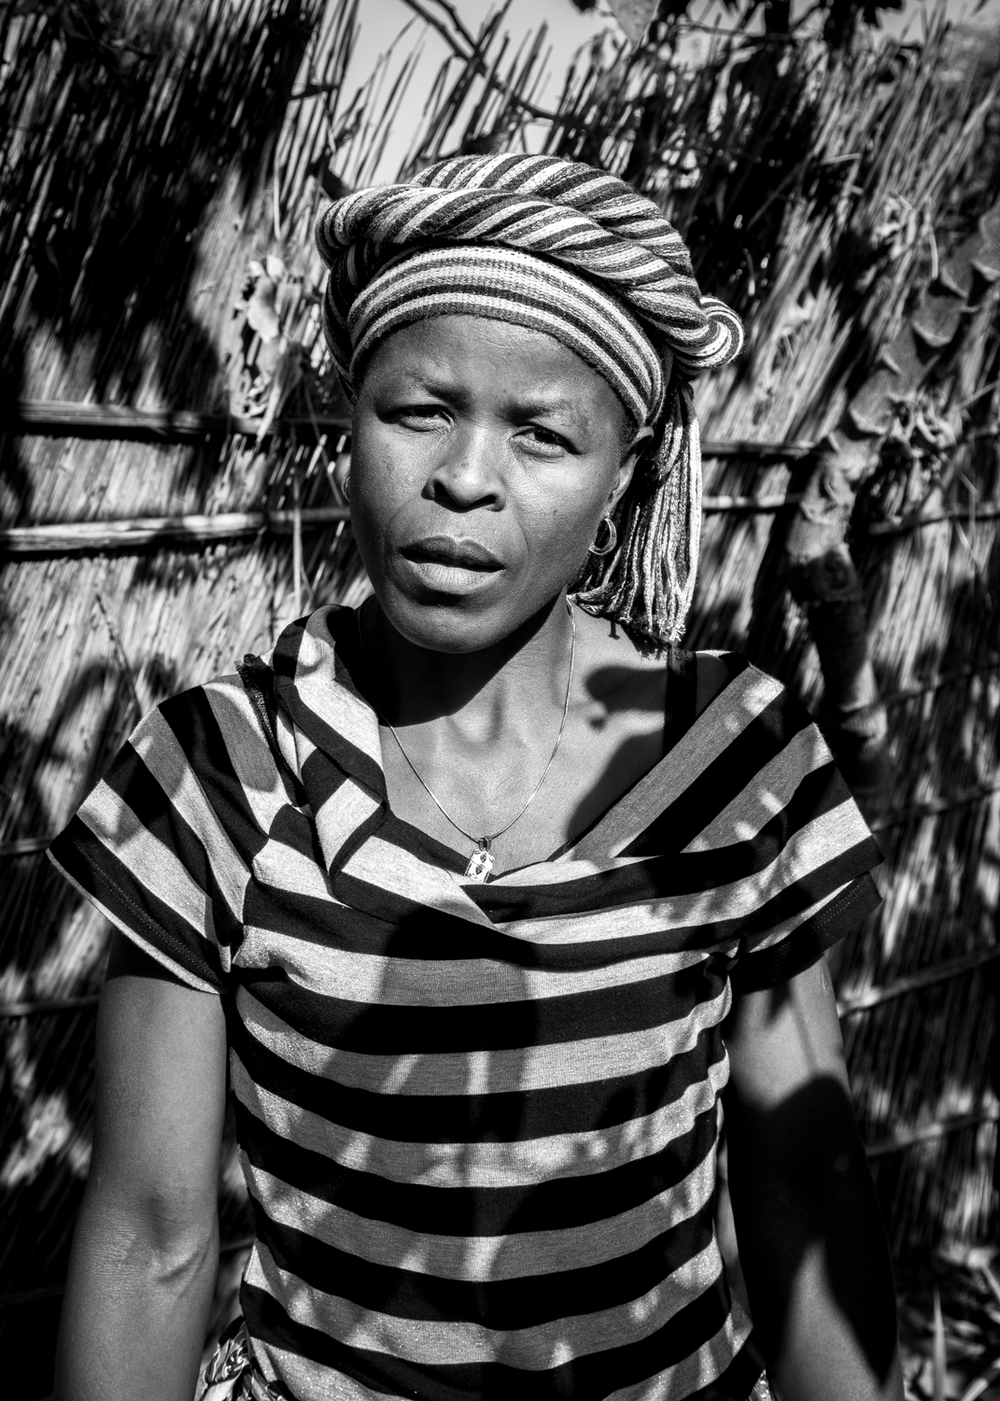 Adam Dickens Photography 2015 - GROW Malawi - Jean Ndalo 1314.jpg